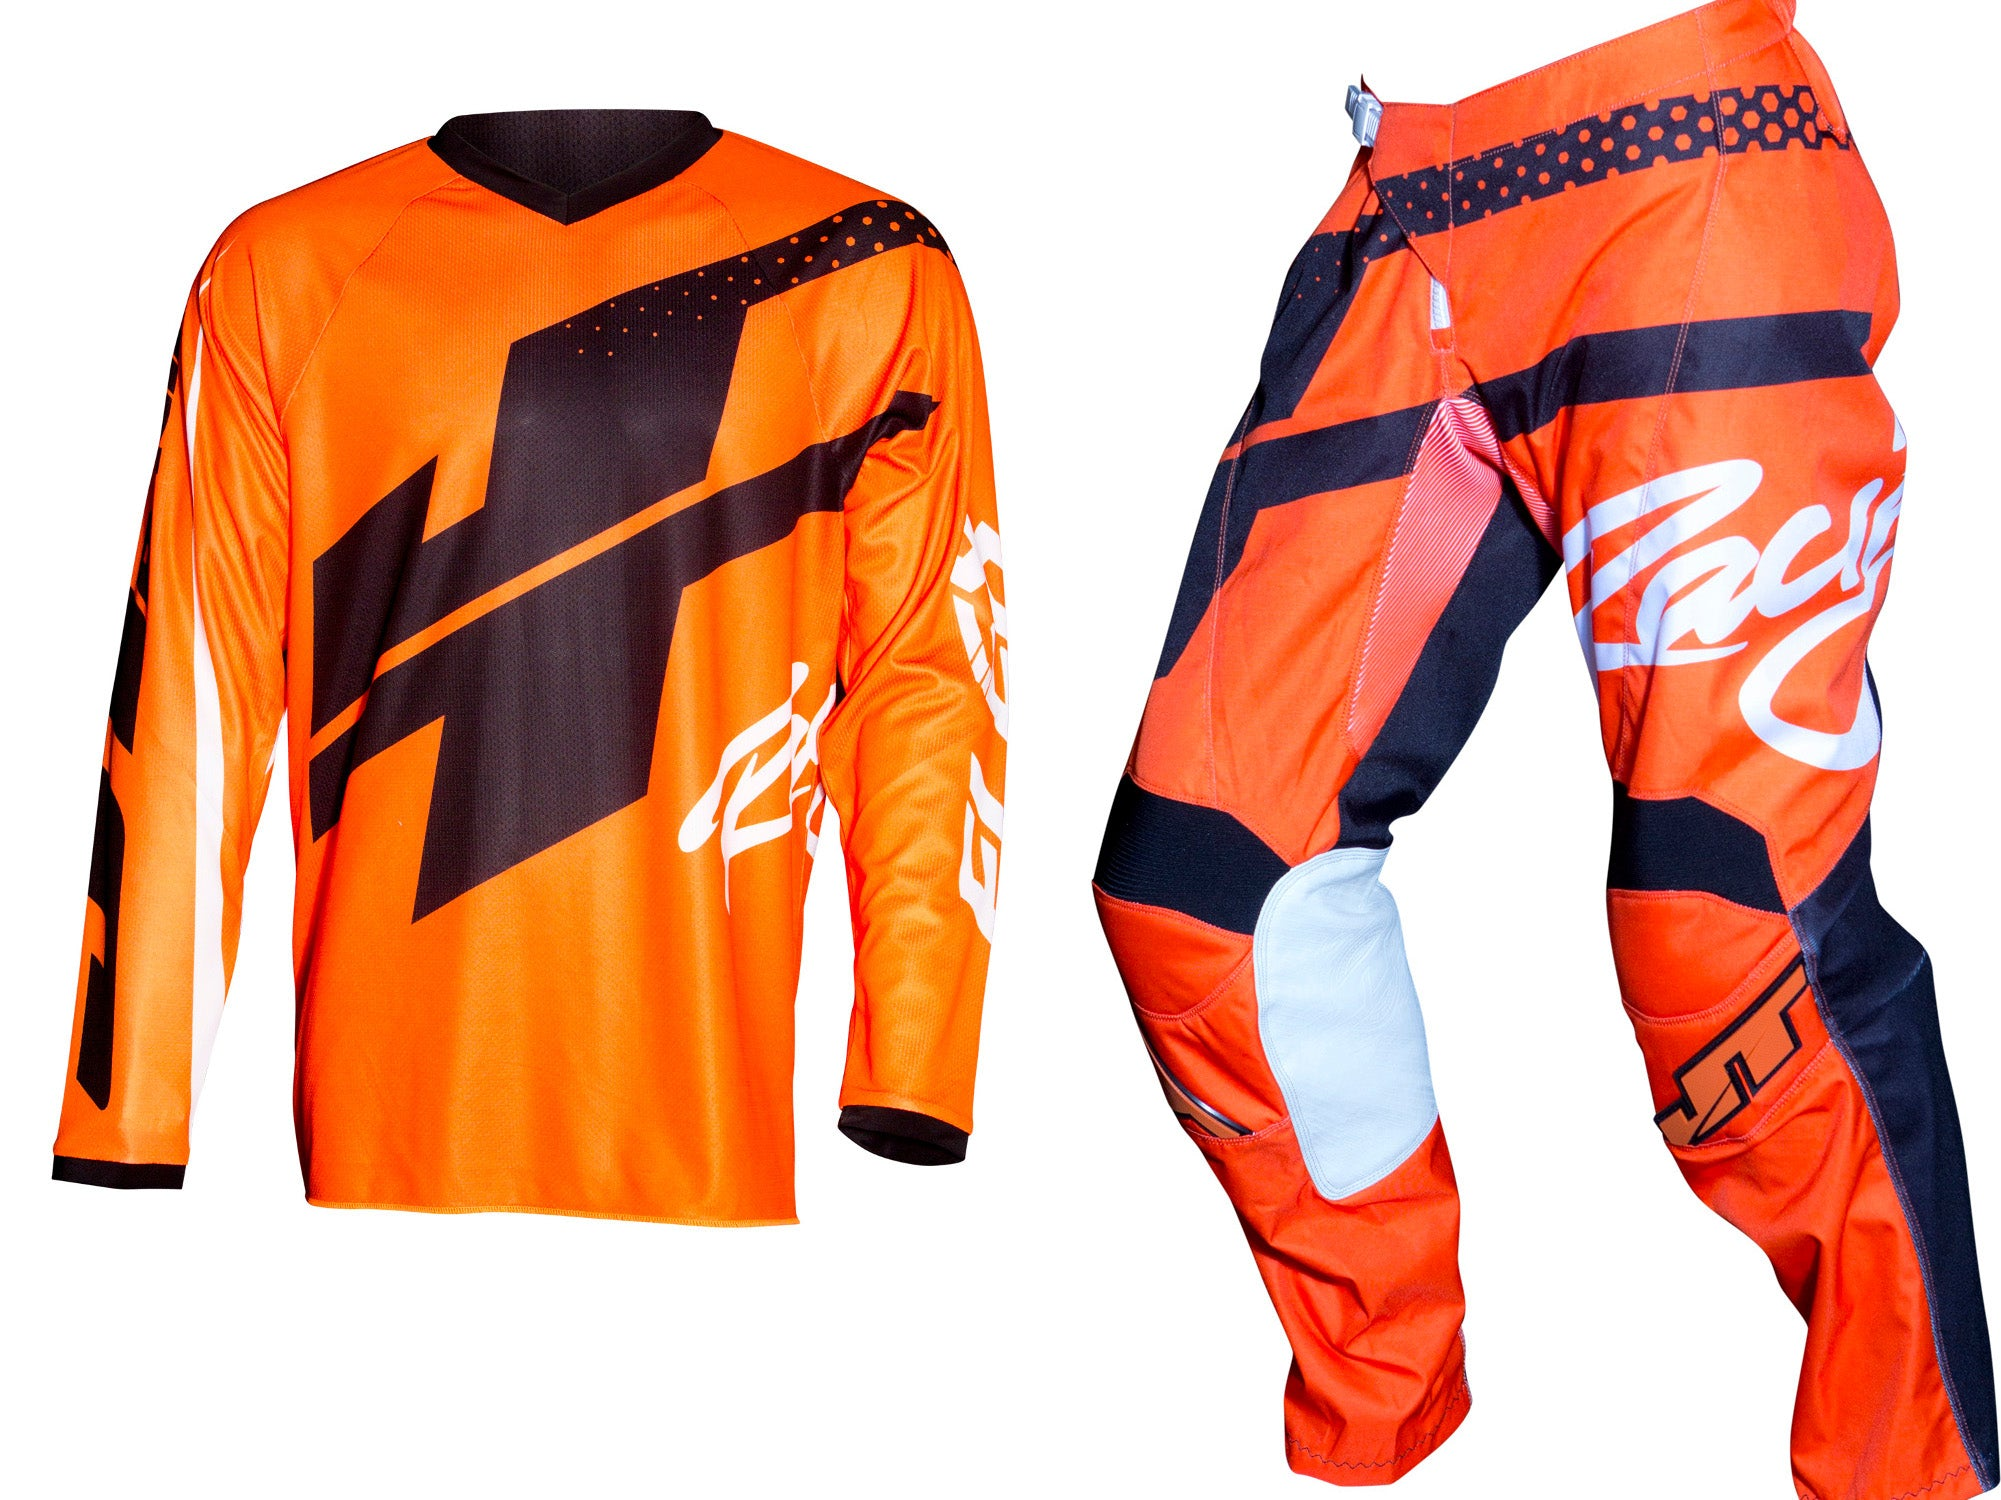 JT RACING USA-Flex Hi-Lo Jersey, Fluro Orange/Black